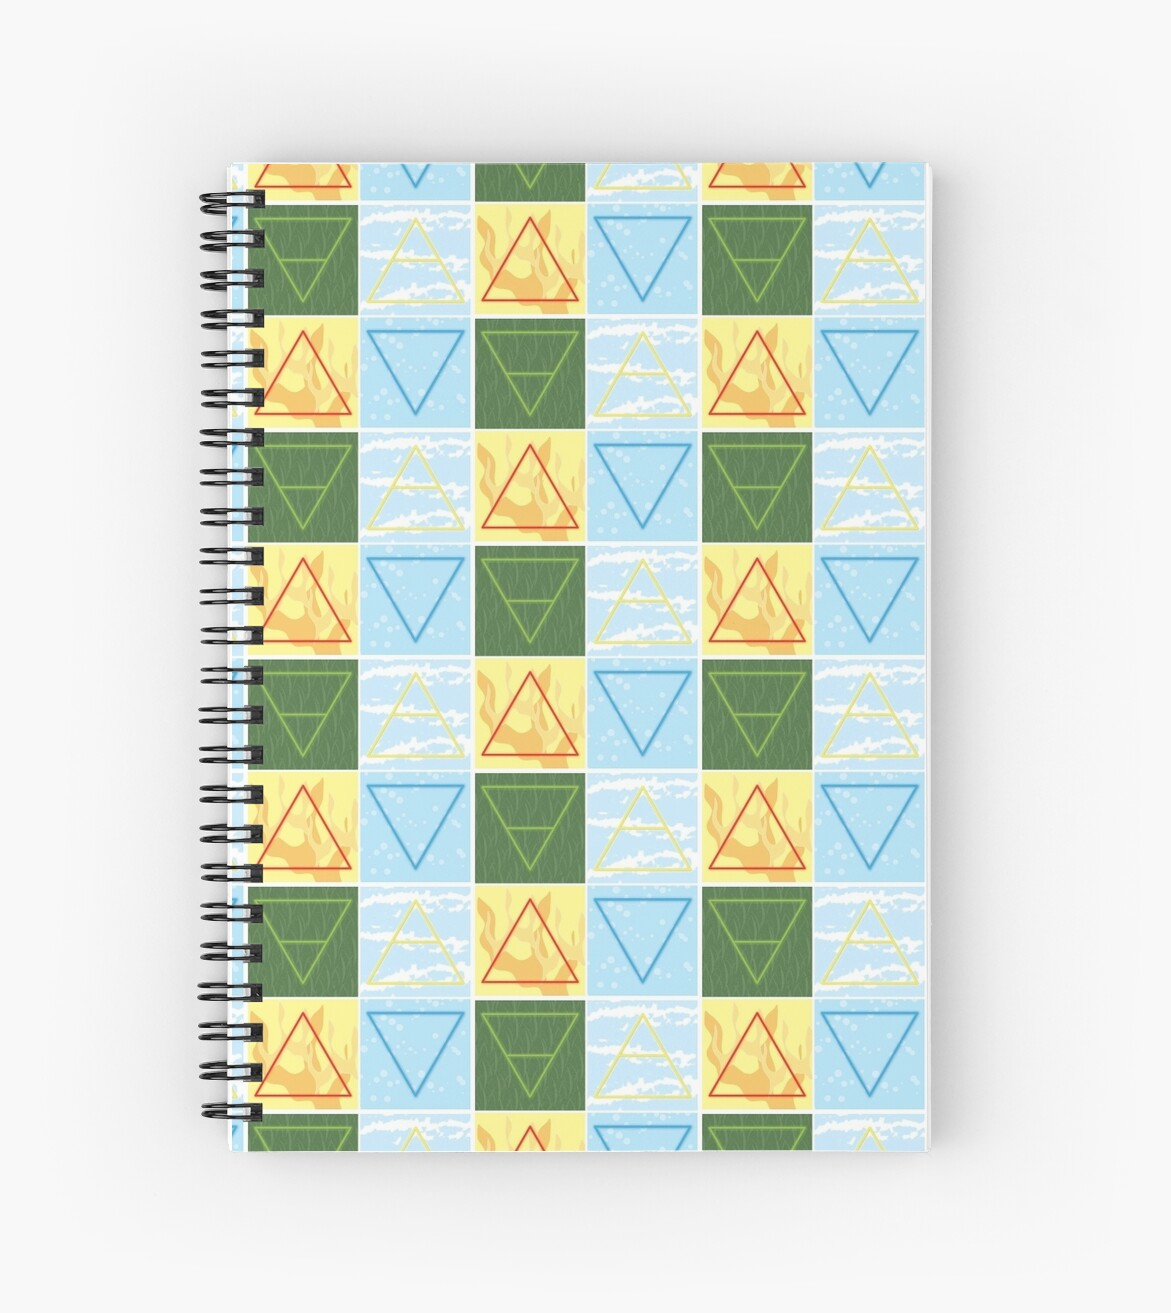 Earth Wind Fire Water Color Alchemy Symbols Spiral Notebooks By